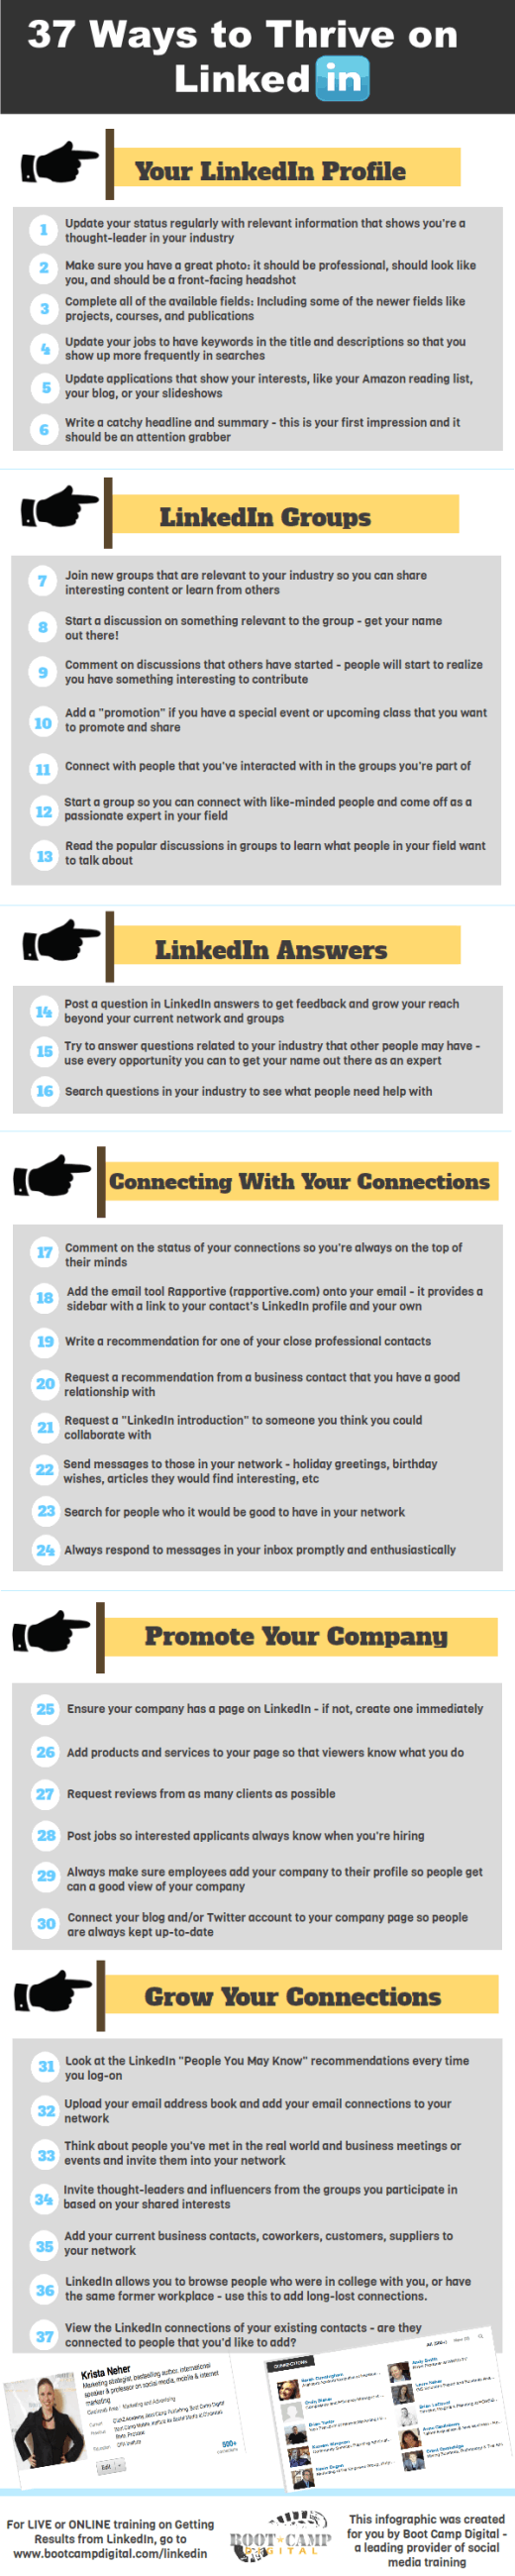 LinkedIn Infographic by Boot Camp Digital 520x2600 37 Ways To Thrive On Linkedin [INFOGRAPHIC]